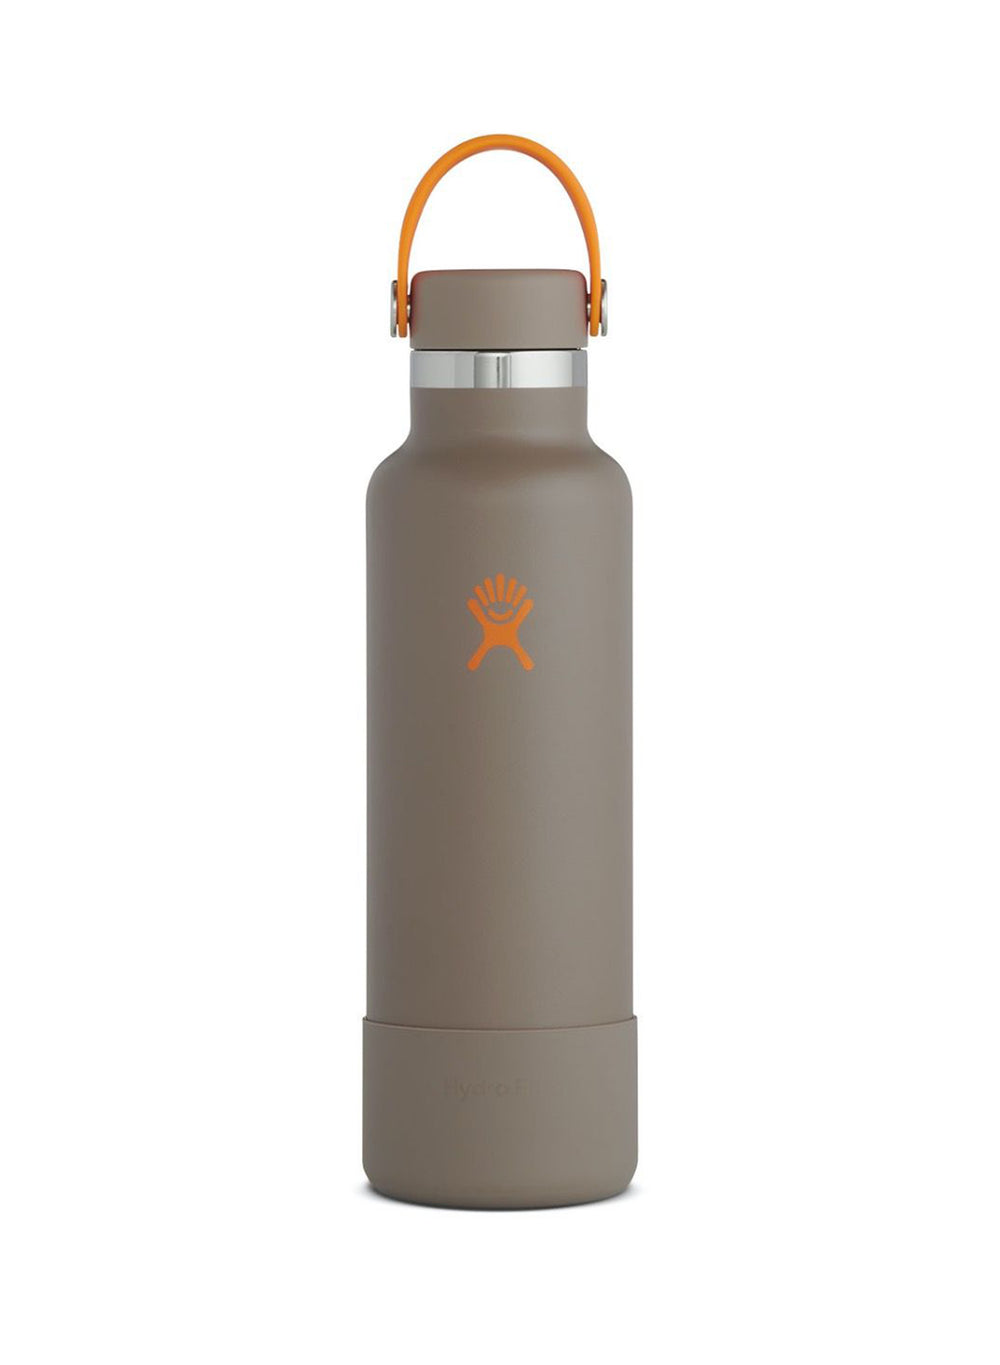 Hydro Flask 21 oz Standard Mouth with Flex Cap and Boot - Limited Edition